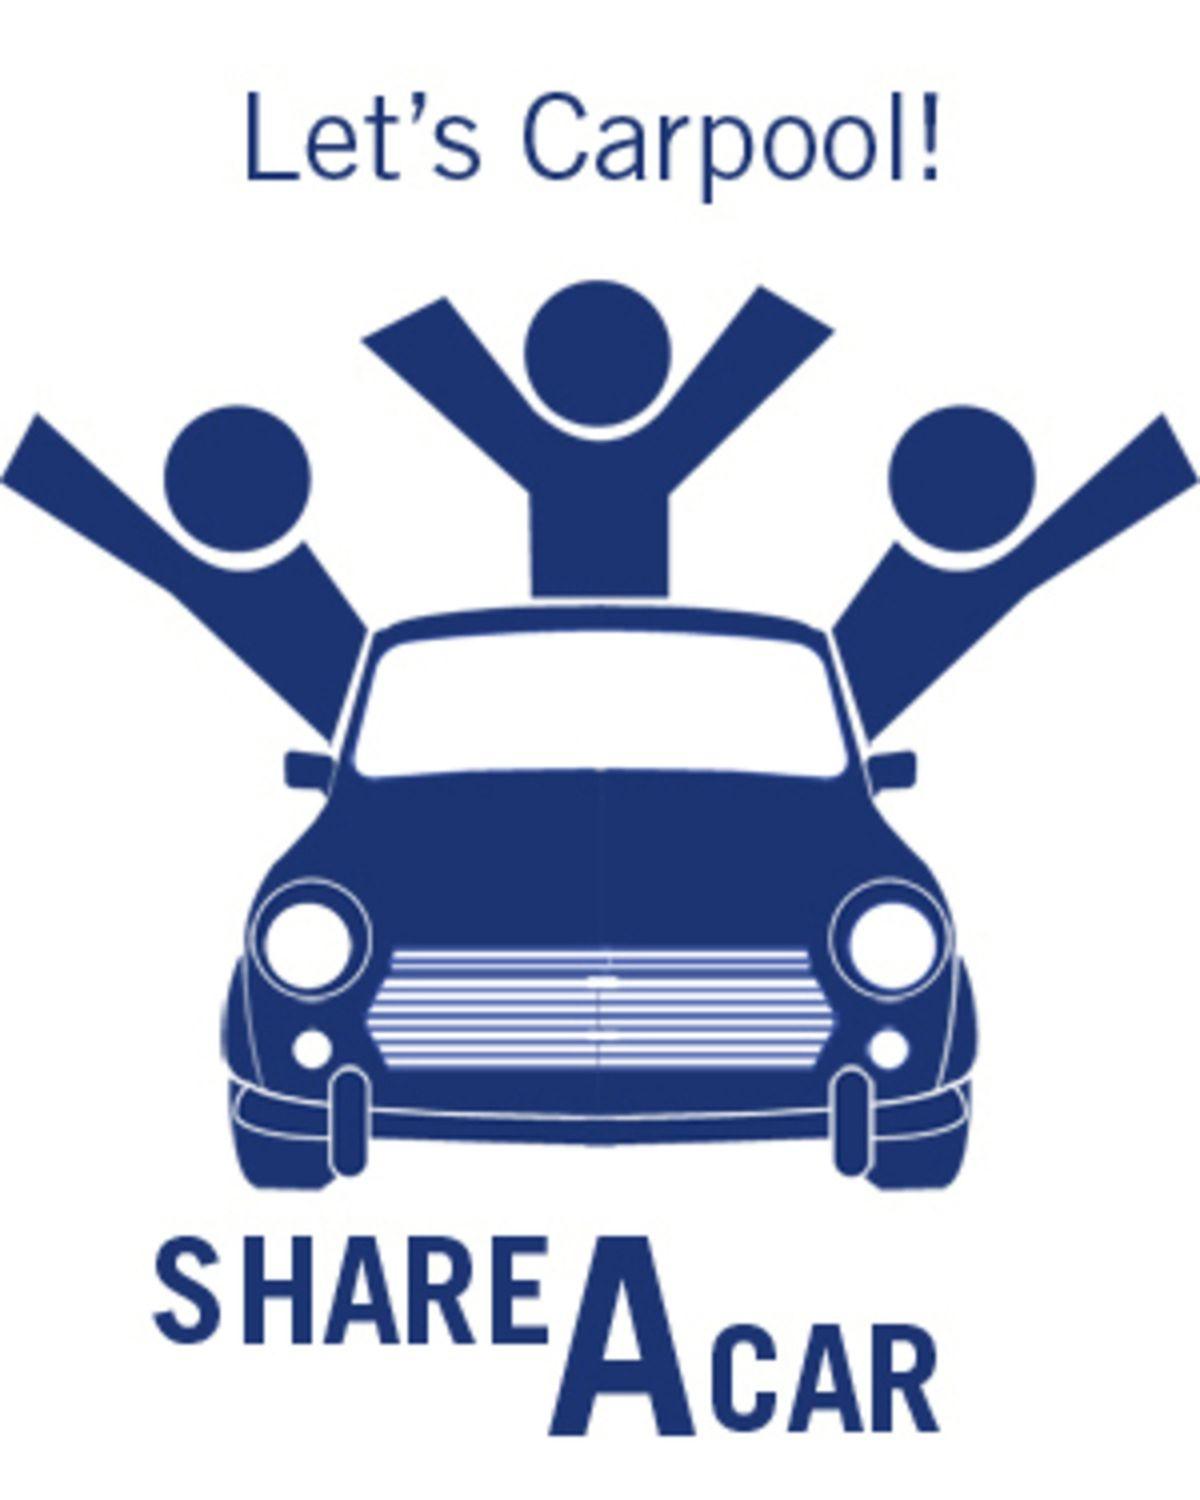 Let's Carpool! (Vamos de carona!)